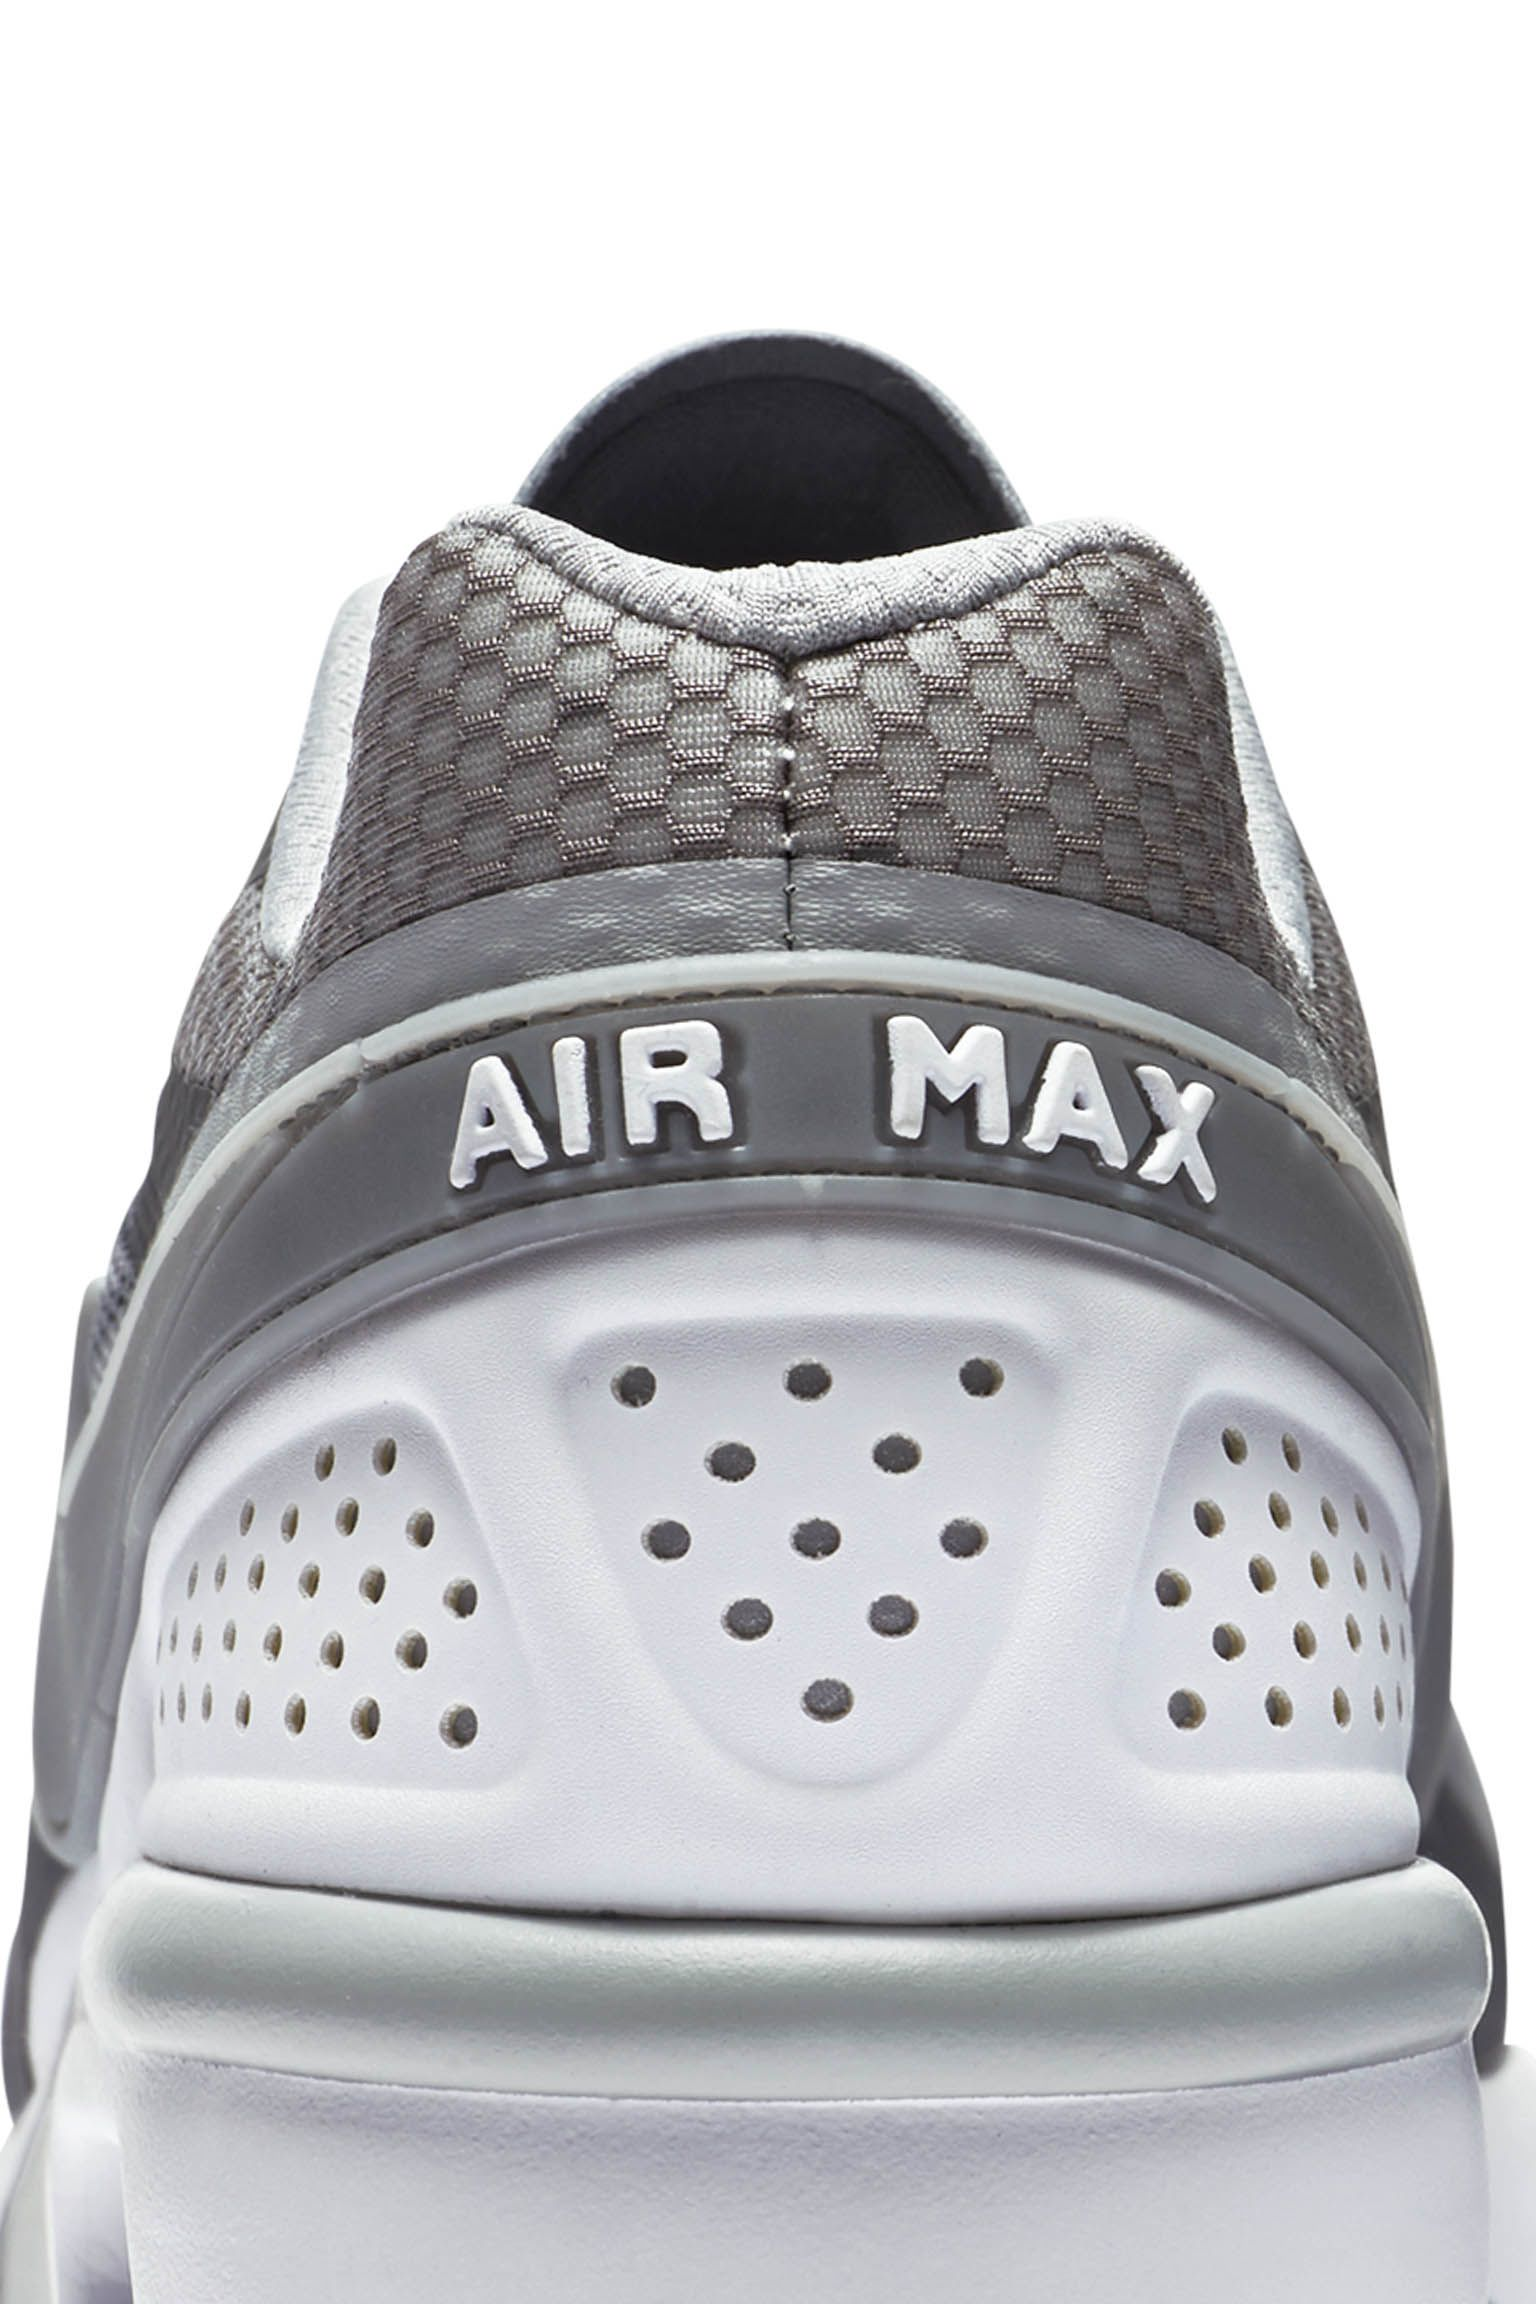 Nike Air Max BW Ultra 'Grey & White' Release Date